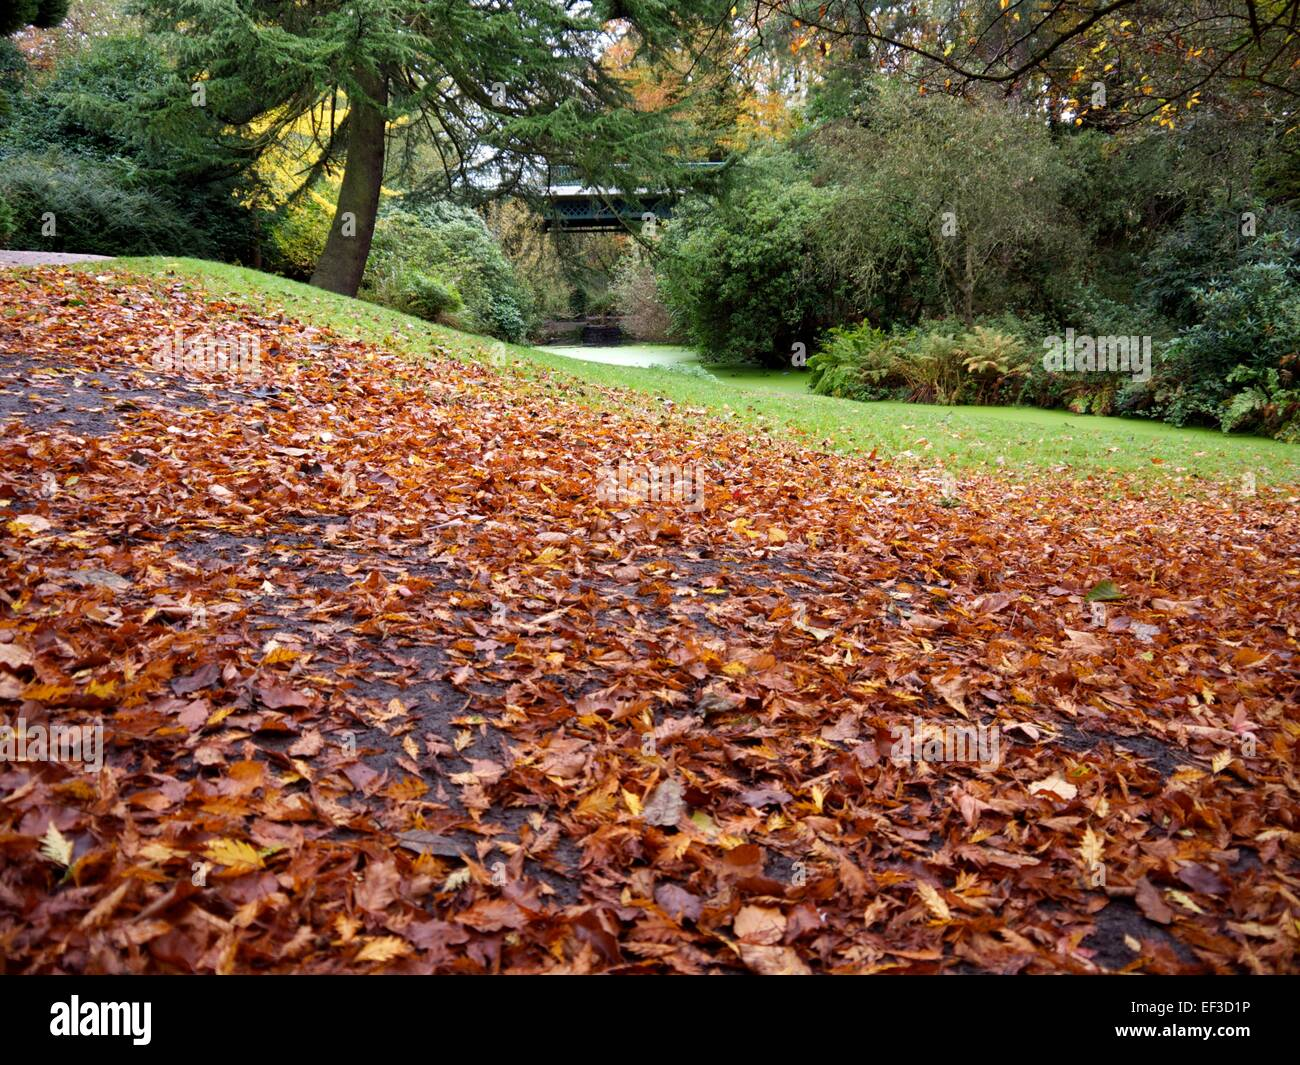 autumn leaves on the ground and woods and a bridge in the background